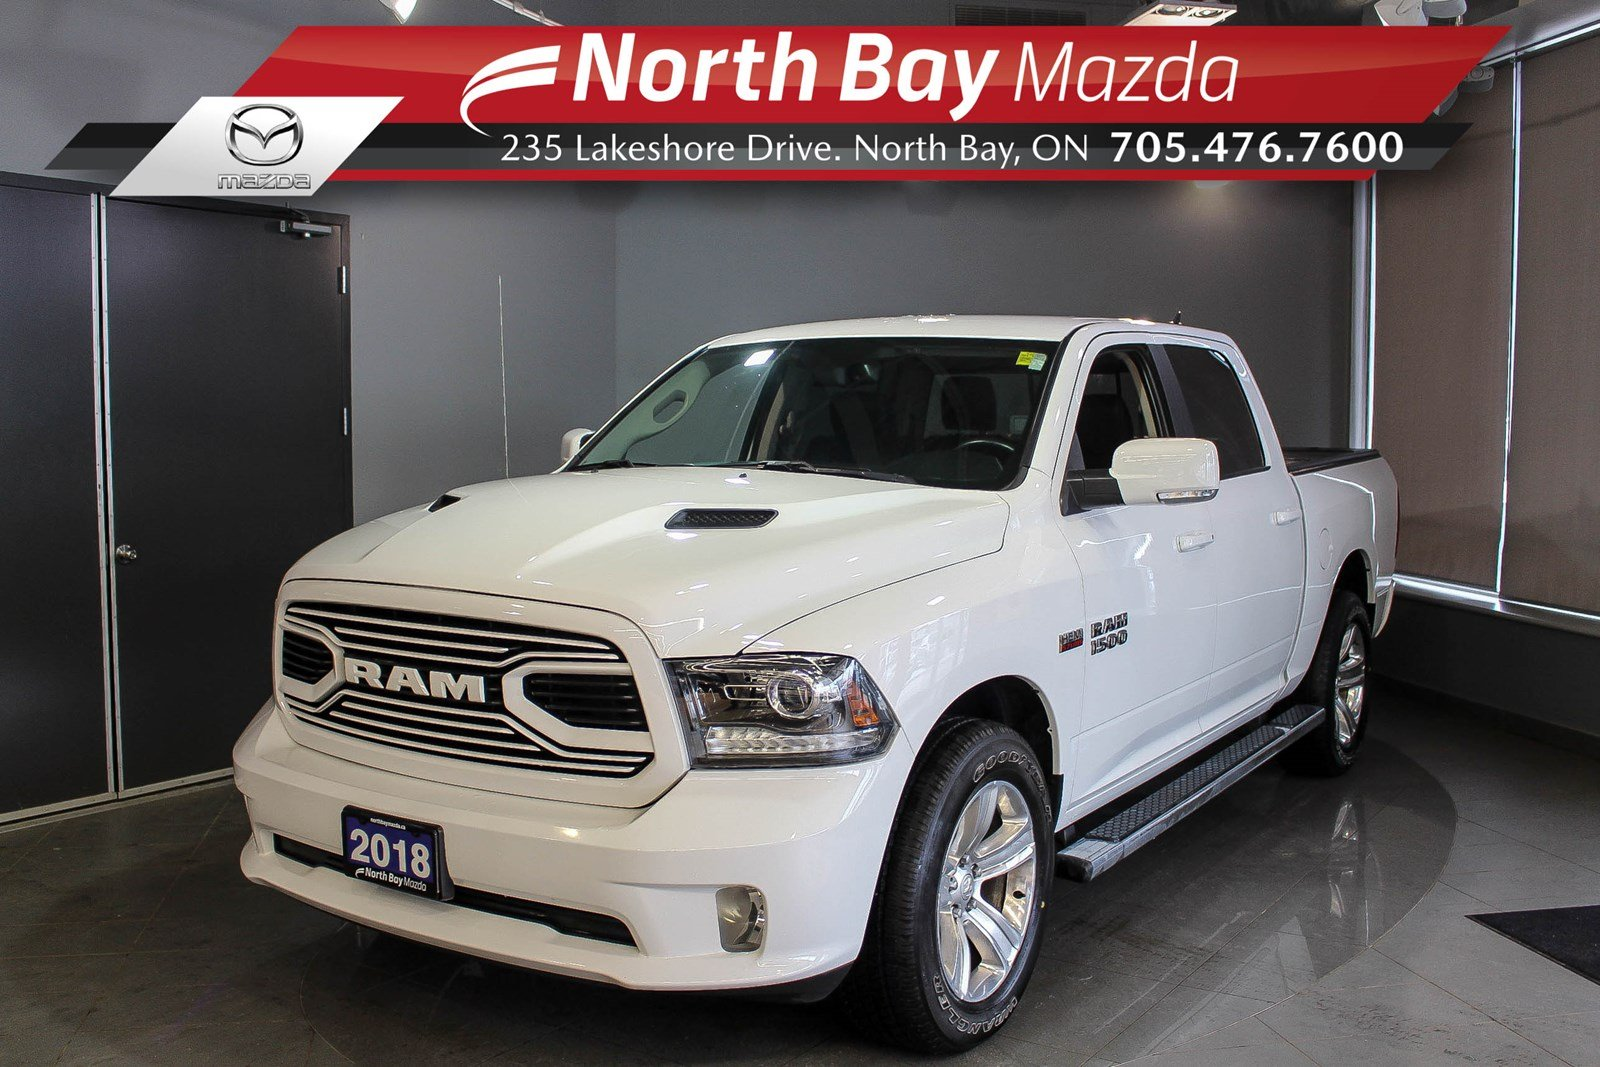 Pre-Owned 2018 Dodge RAM 1500 Sport 4X4 with Bluetooth, Back Up Camera, Tonneau Cover